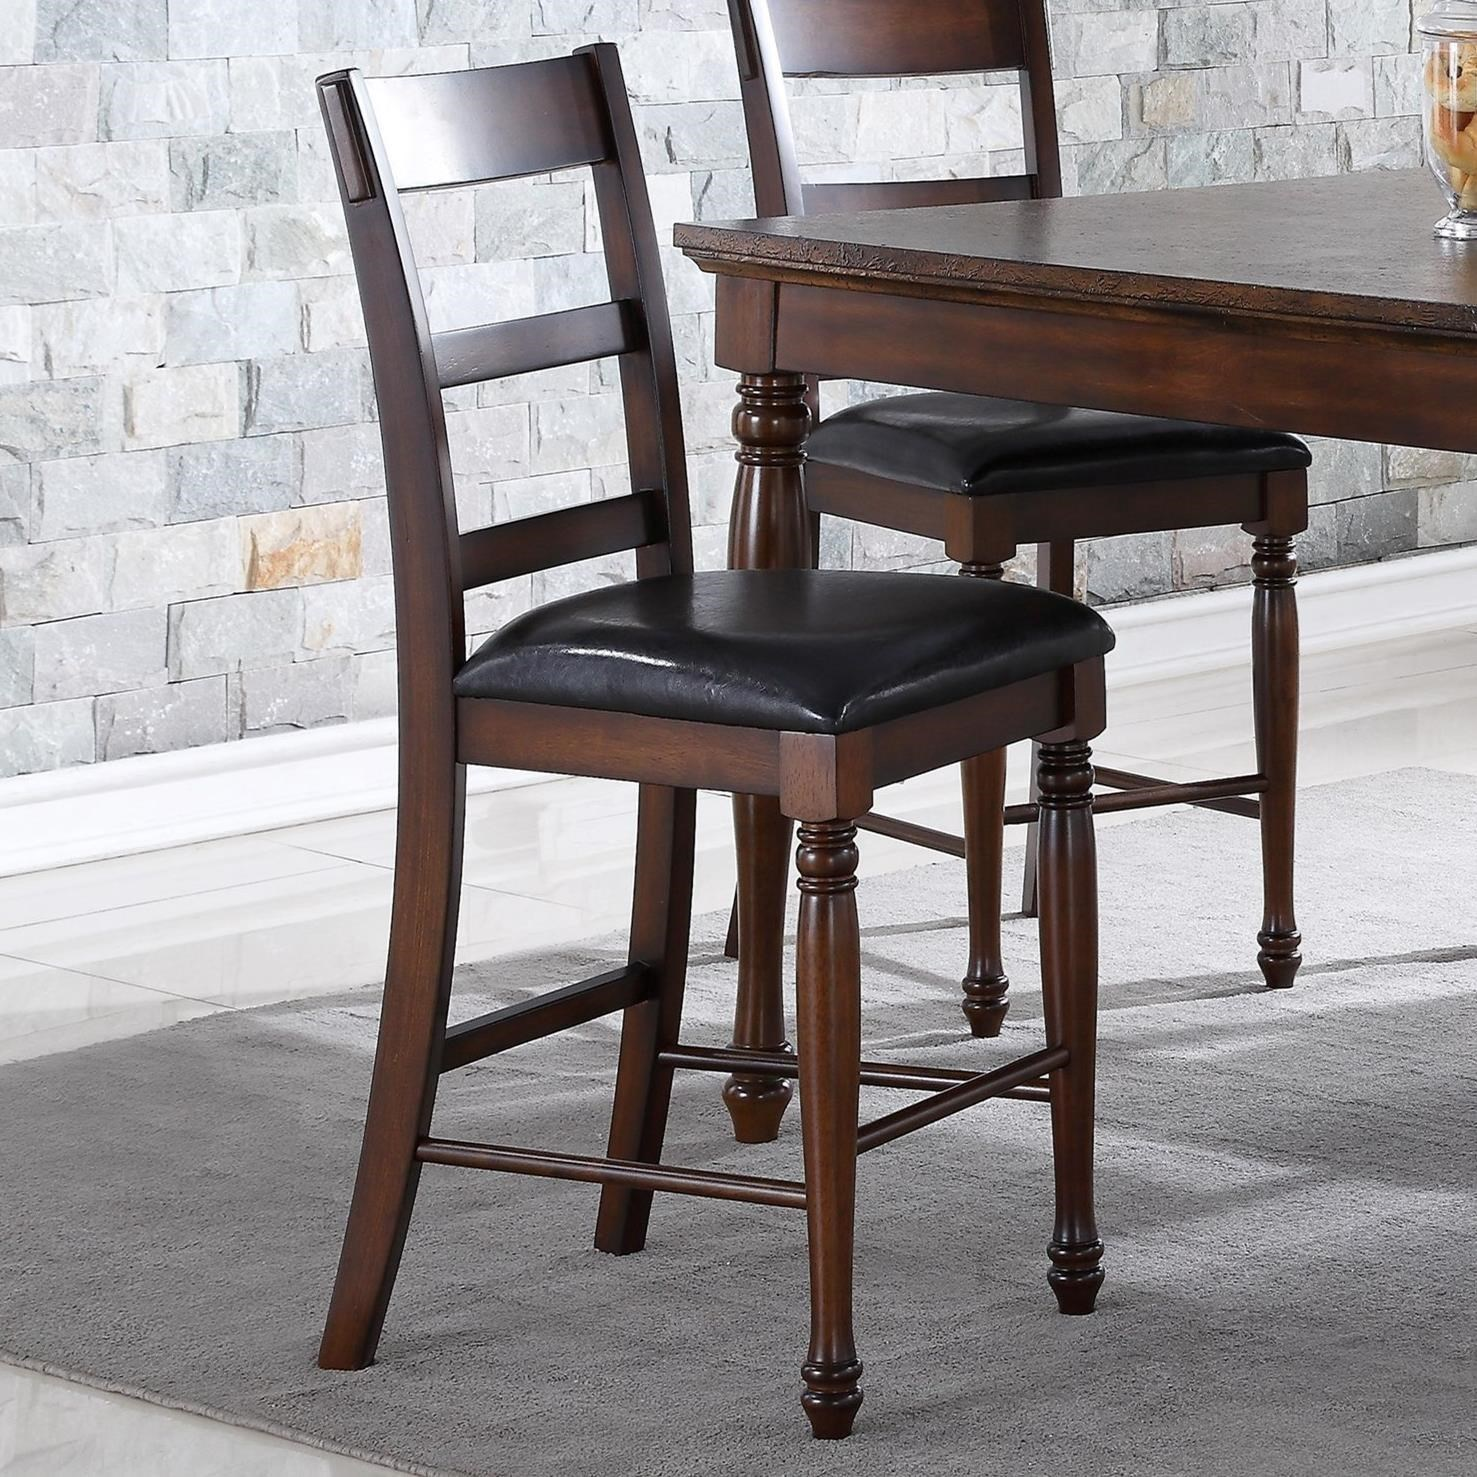 Legends Furniture Breckenridge Breckenridge Counter Height Stool - Item Number: ZBRG-8001